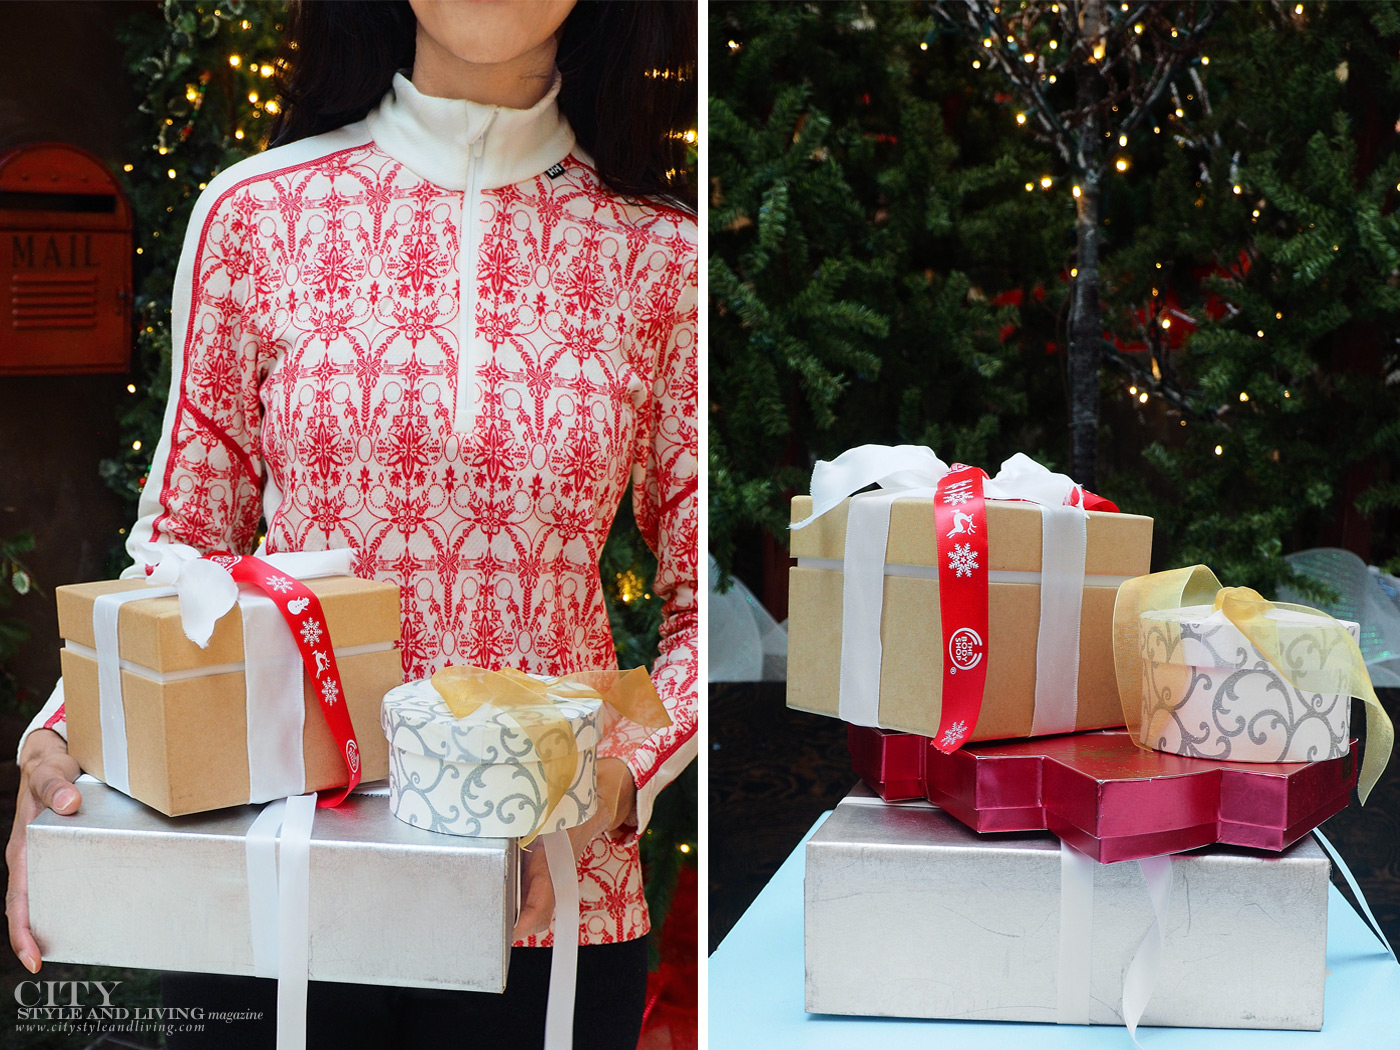 City Style and Living Magazine Winter Shopping hacks for holiday with ups holding presents near mailbox